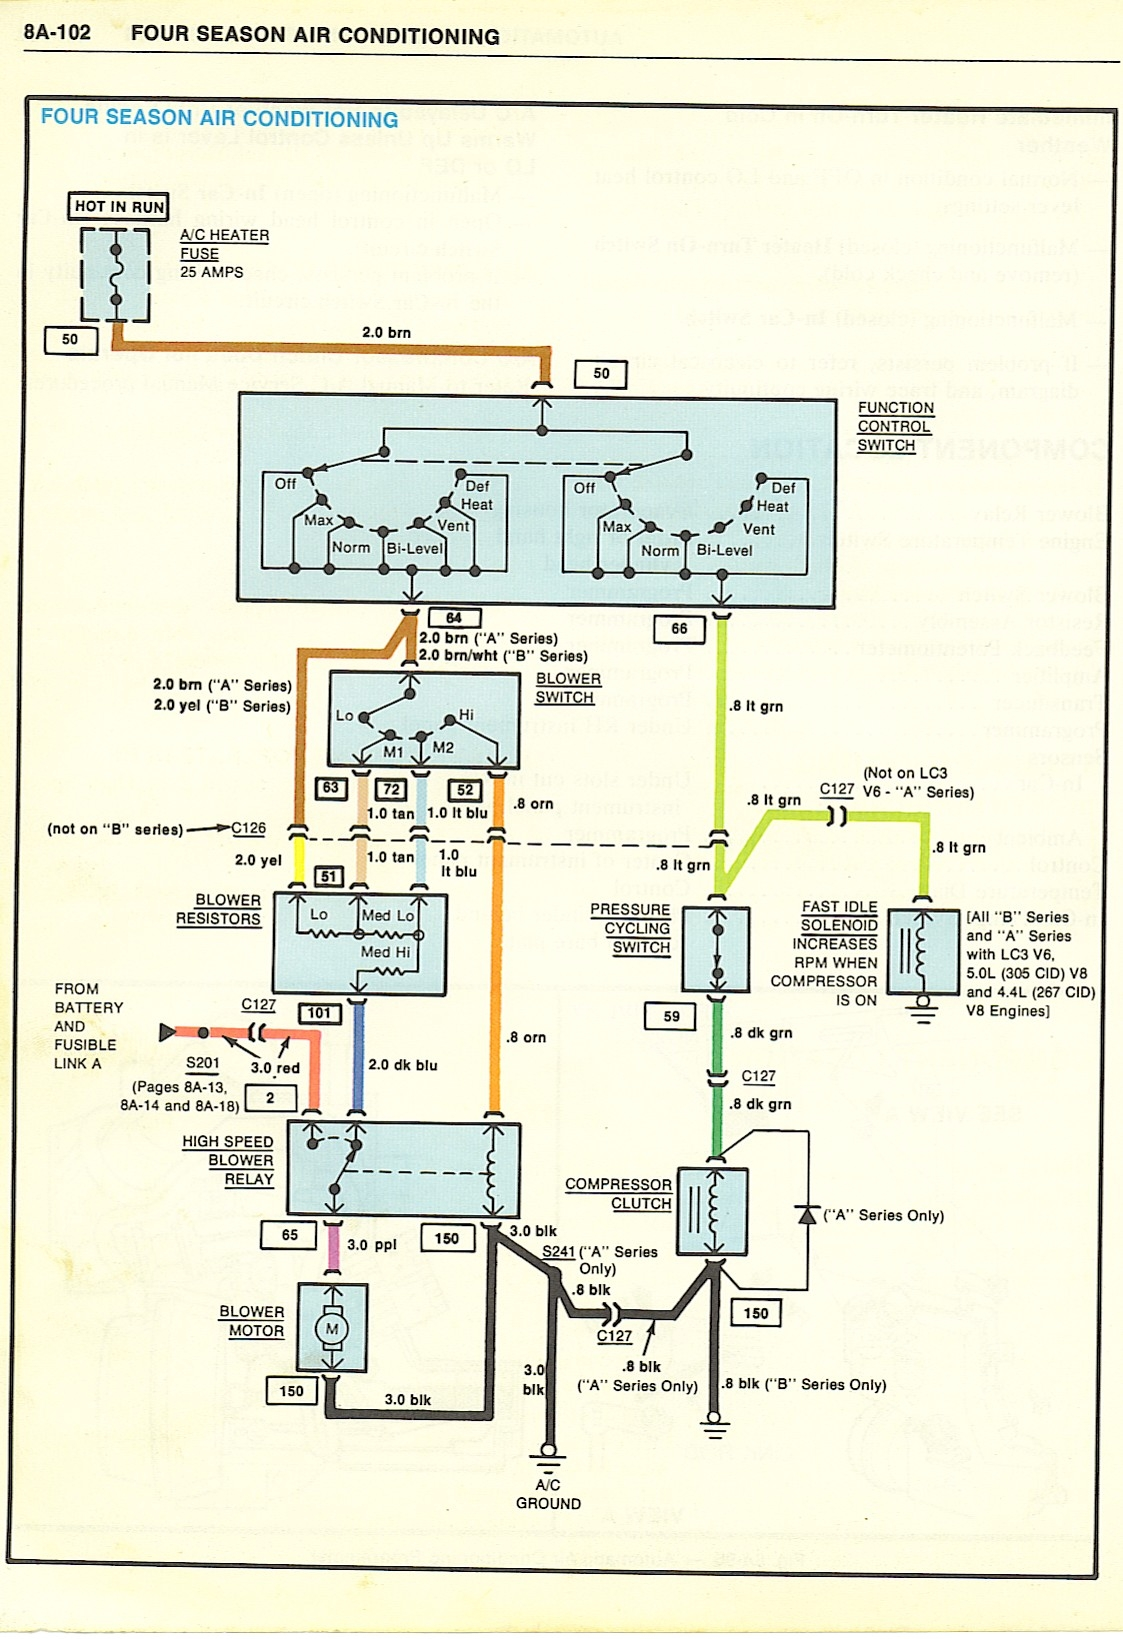 Chevy diagrams 1968 camero ac wiring drawing a asfbconference2016